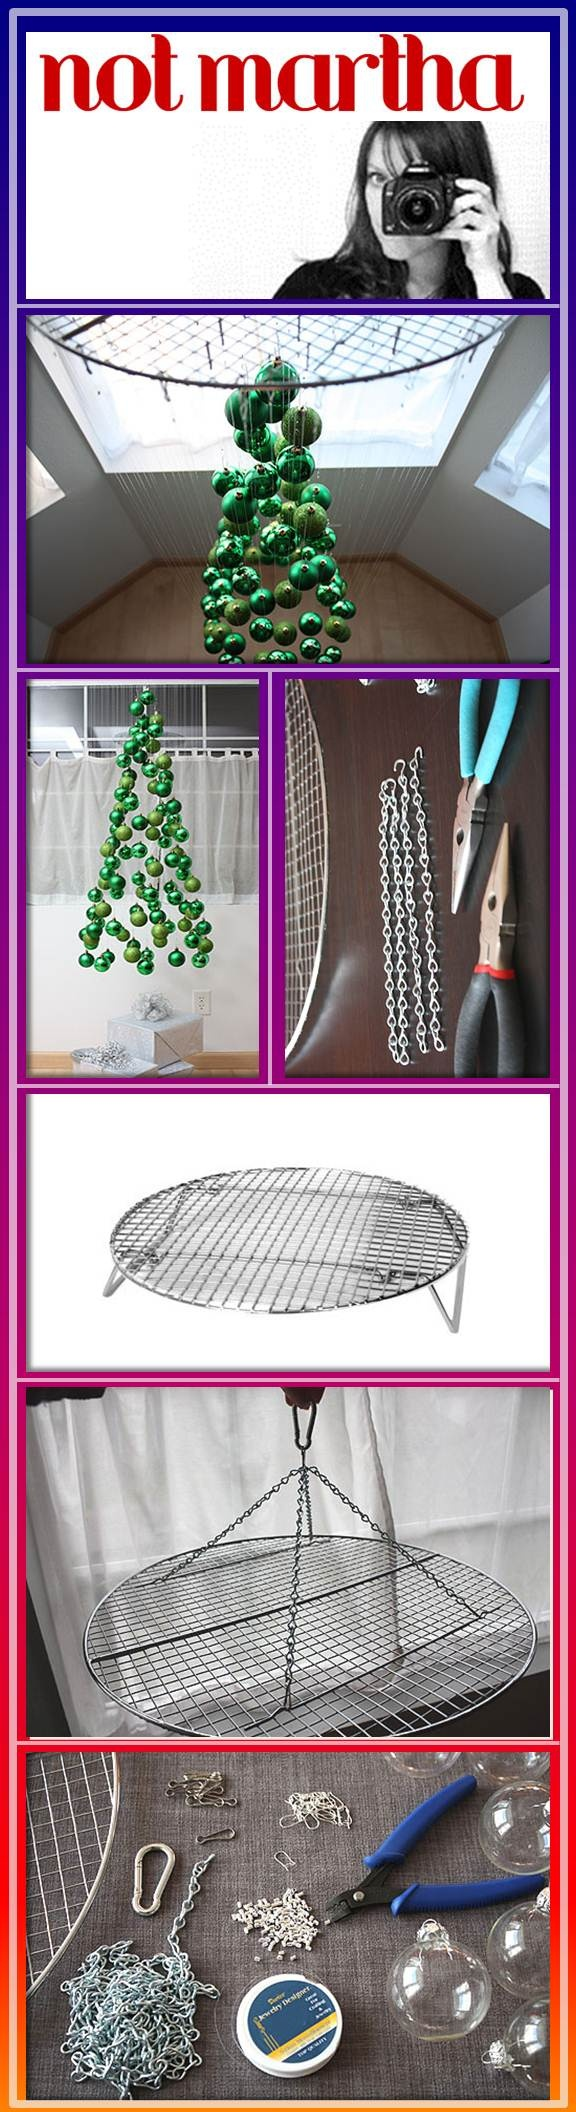 Not Martha is amazing. Her tutorials are easy to follow. Great Blog!! a 17″ steamer rack from a restaurant supply store; about 5 feet of lightweight jack chain; a small carabiner; 100 basic ornament hooks; one roll, 500 feet, monofilament jewelry string (not the stretchy sort); 200 jewelry crimp beads or tubes; jewelry crimping tool; 100 lanyard hooks; 100 ornaments. Picture shows earring wires, but lanyard hooks worked better. Over Dinner Table, not too low